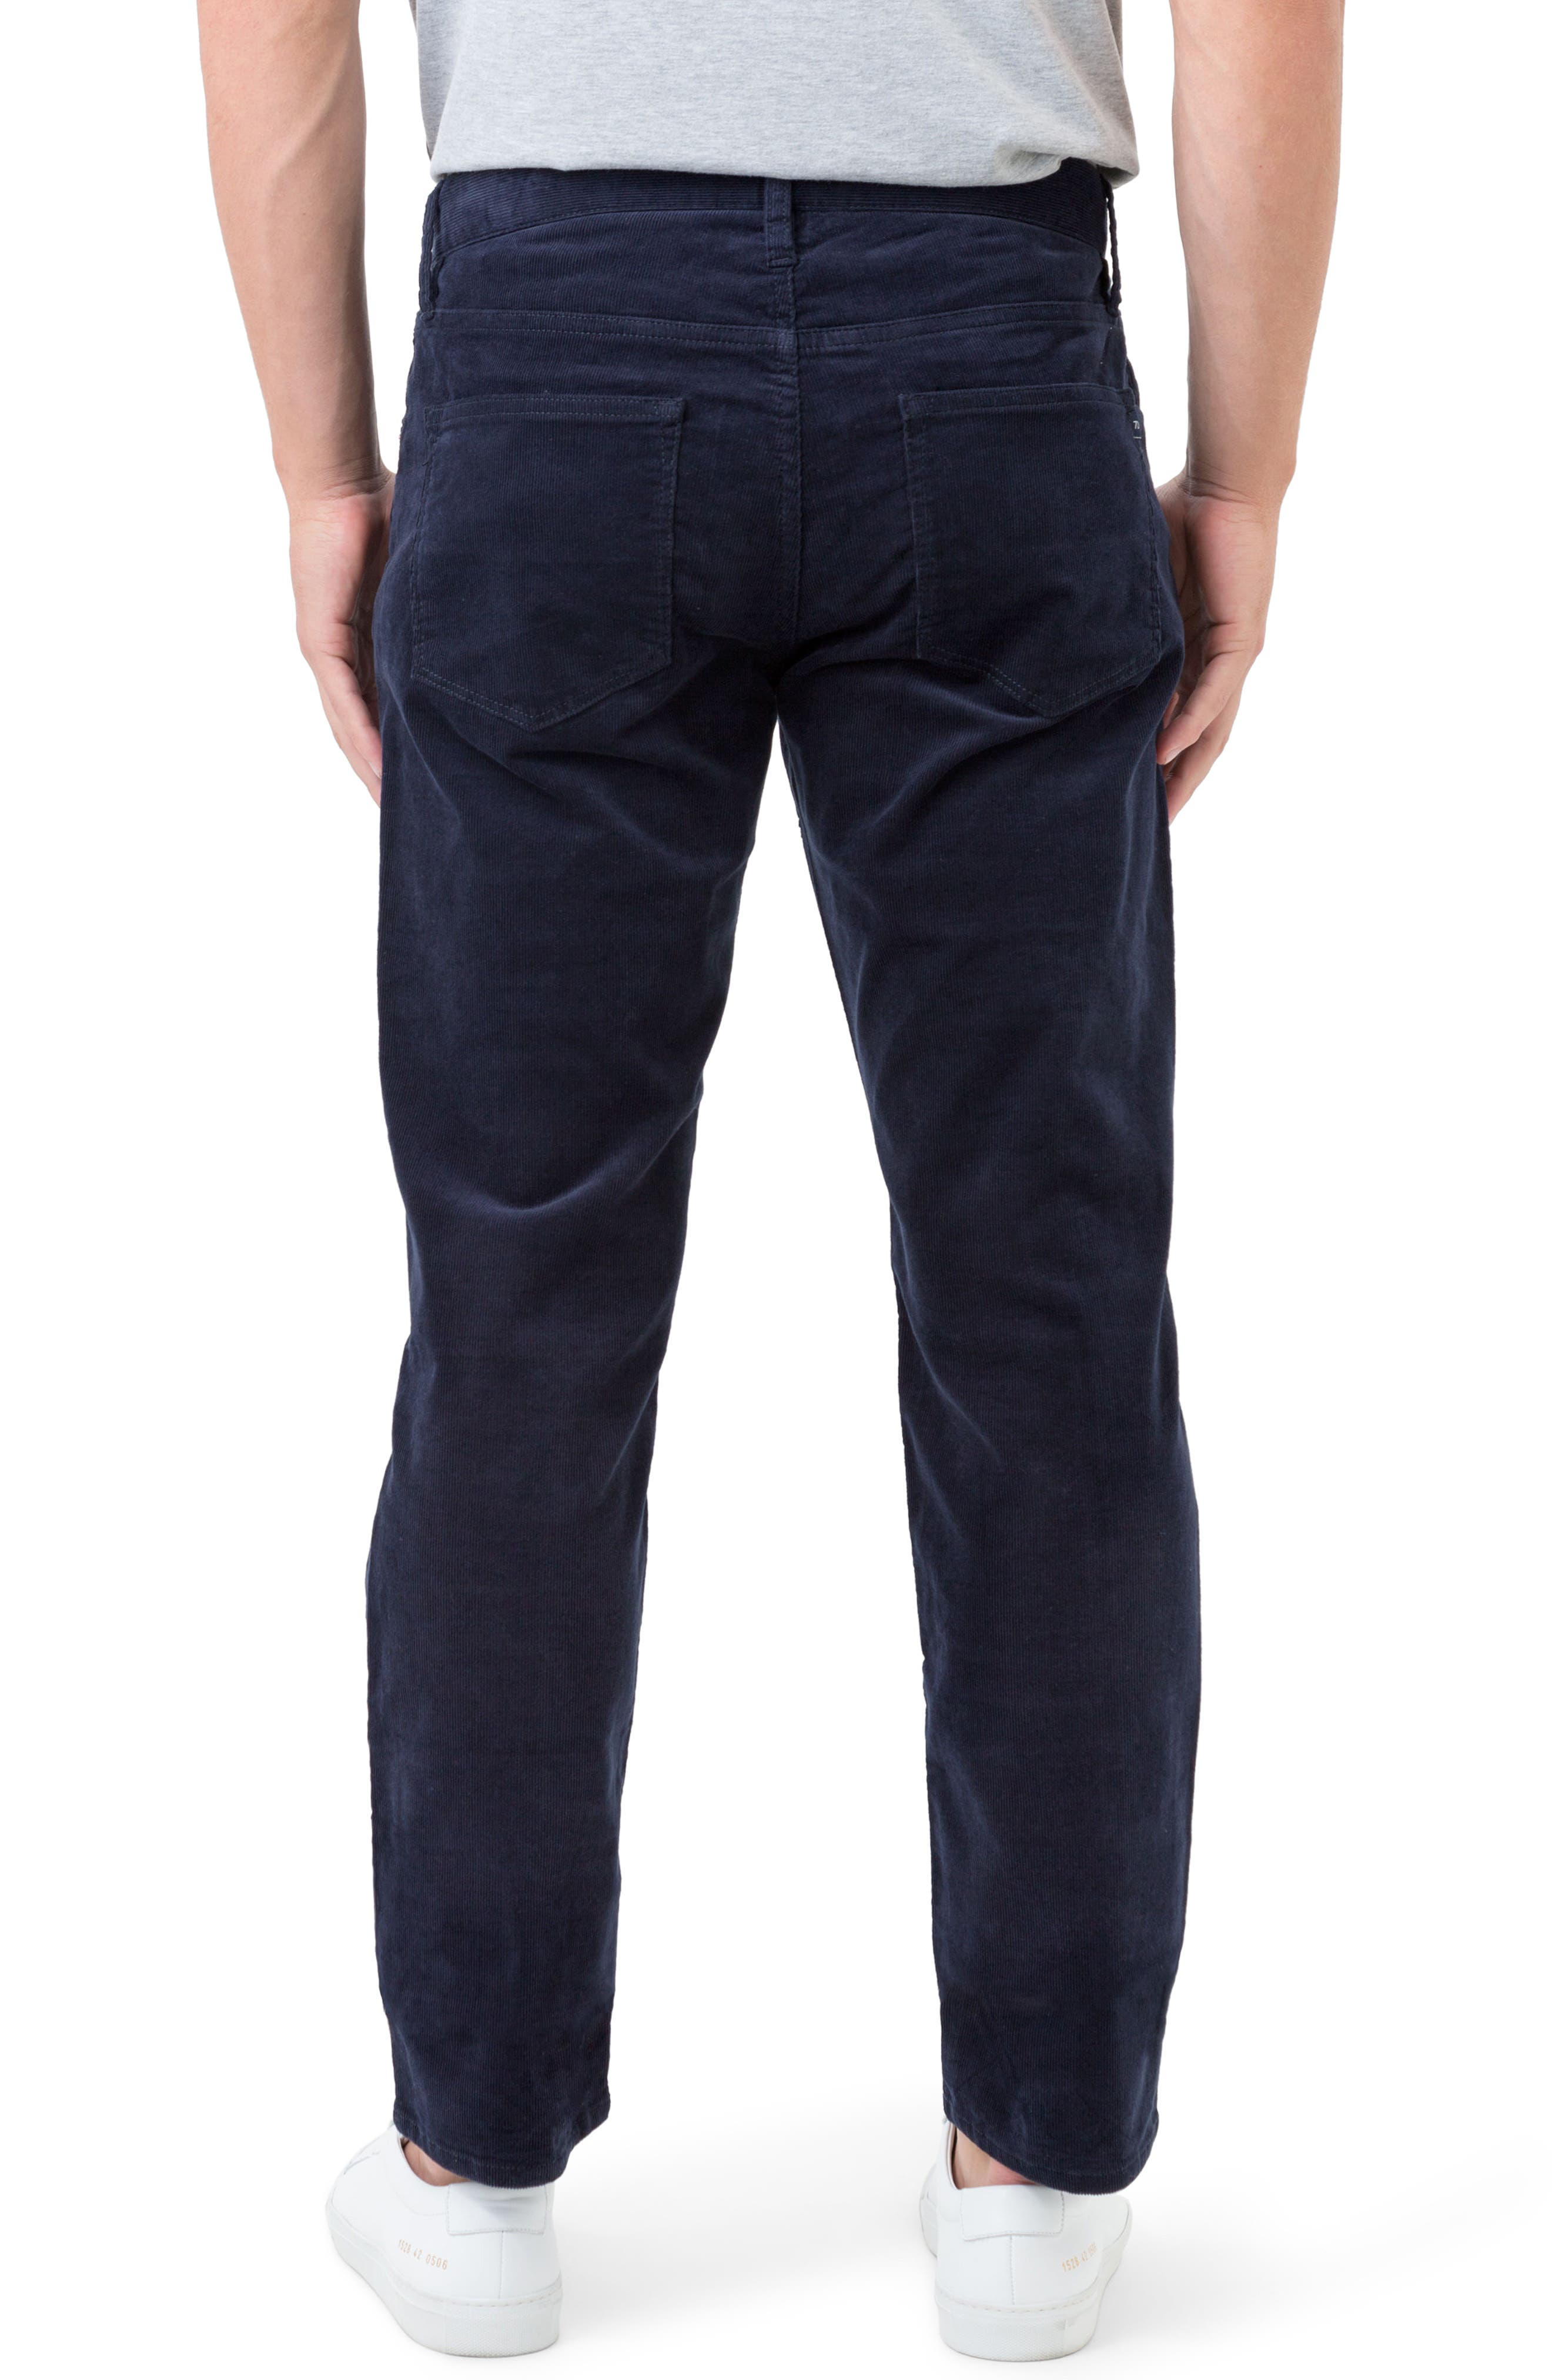 Courtland Slim Fit Corduroy Pants,                             Alternate thumbnail 2, color,                             Navy